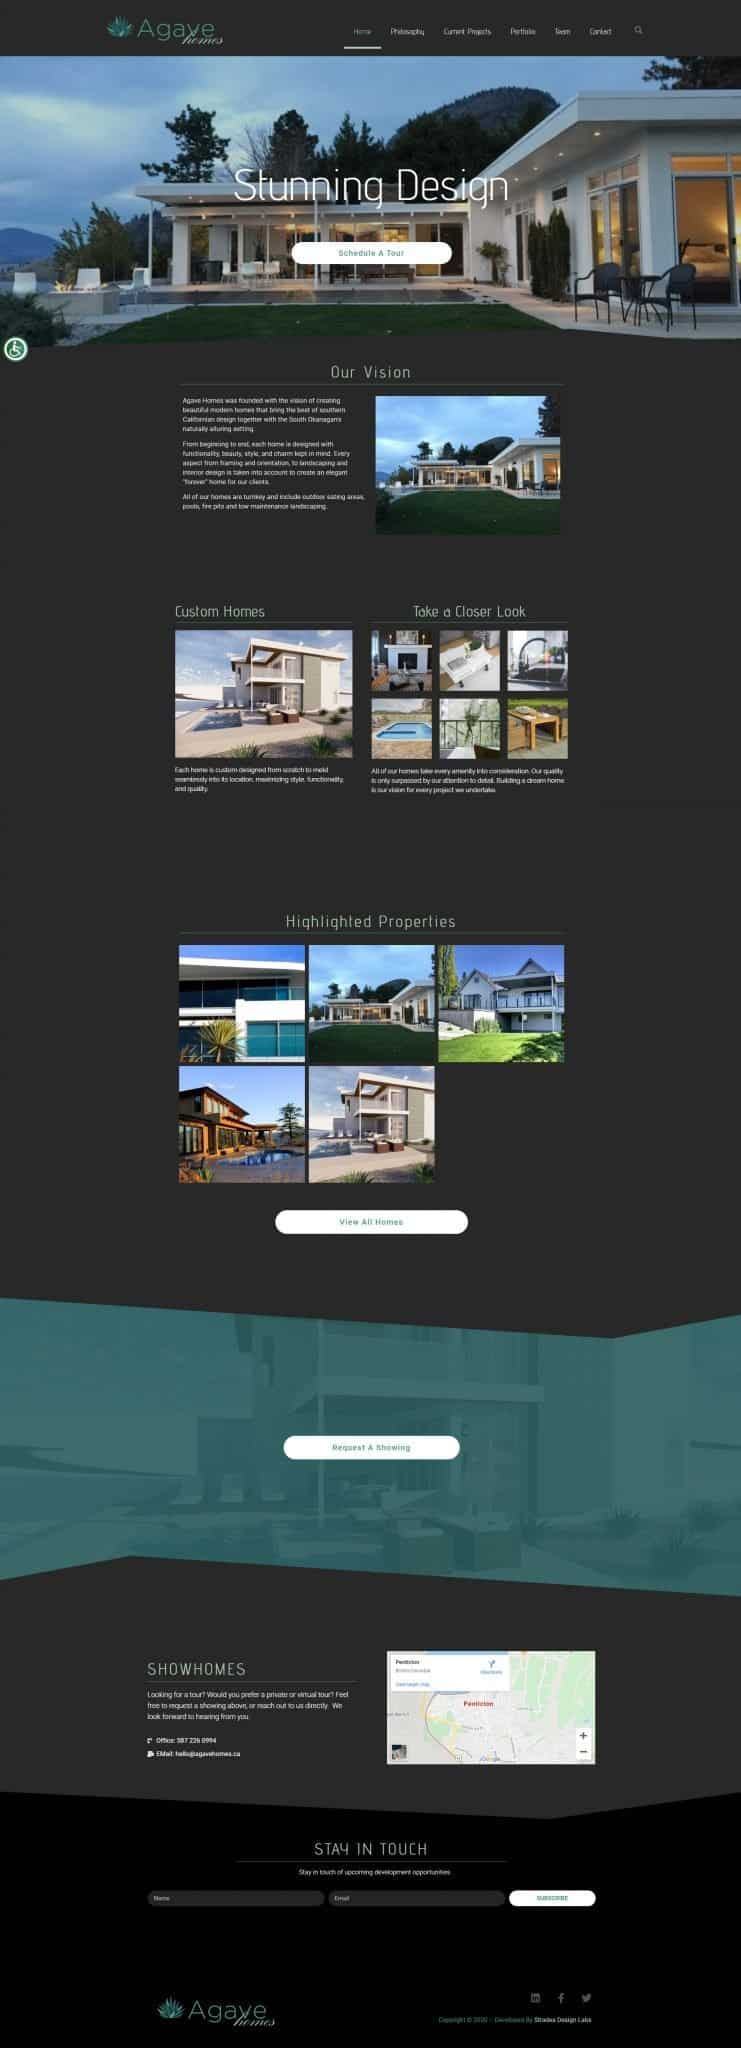 Agave Homes Website